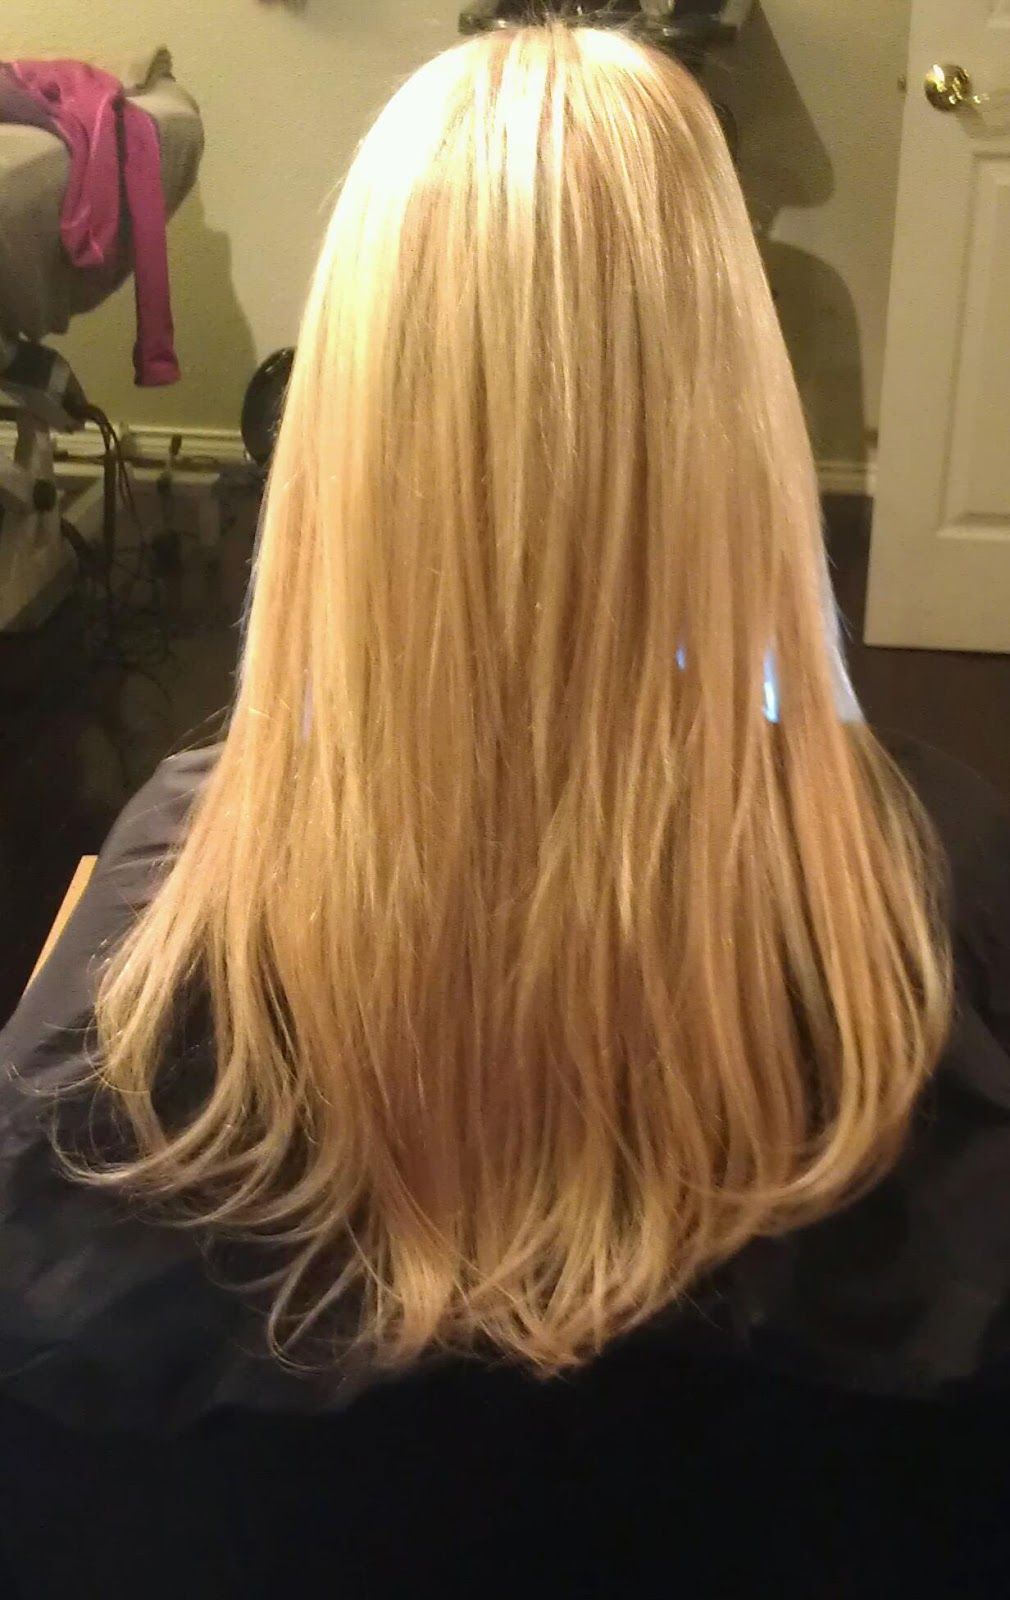 After application of Hot Heads Extensions ~ Back Profile